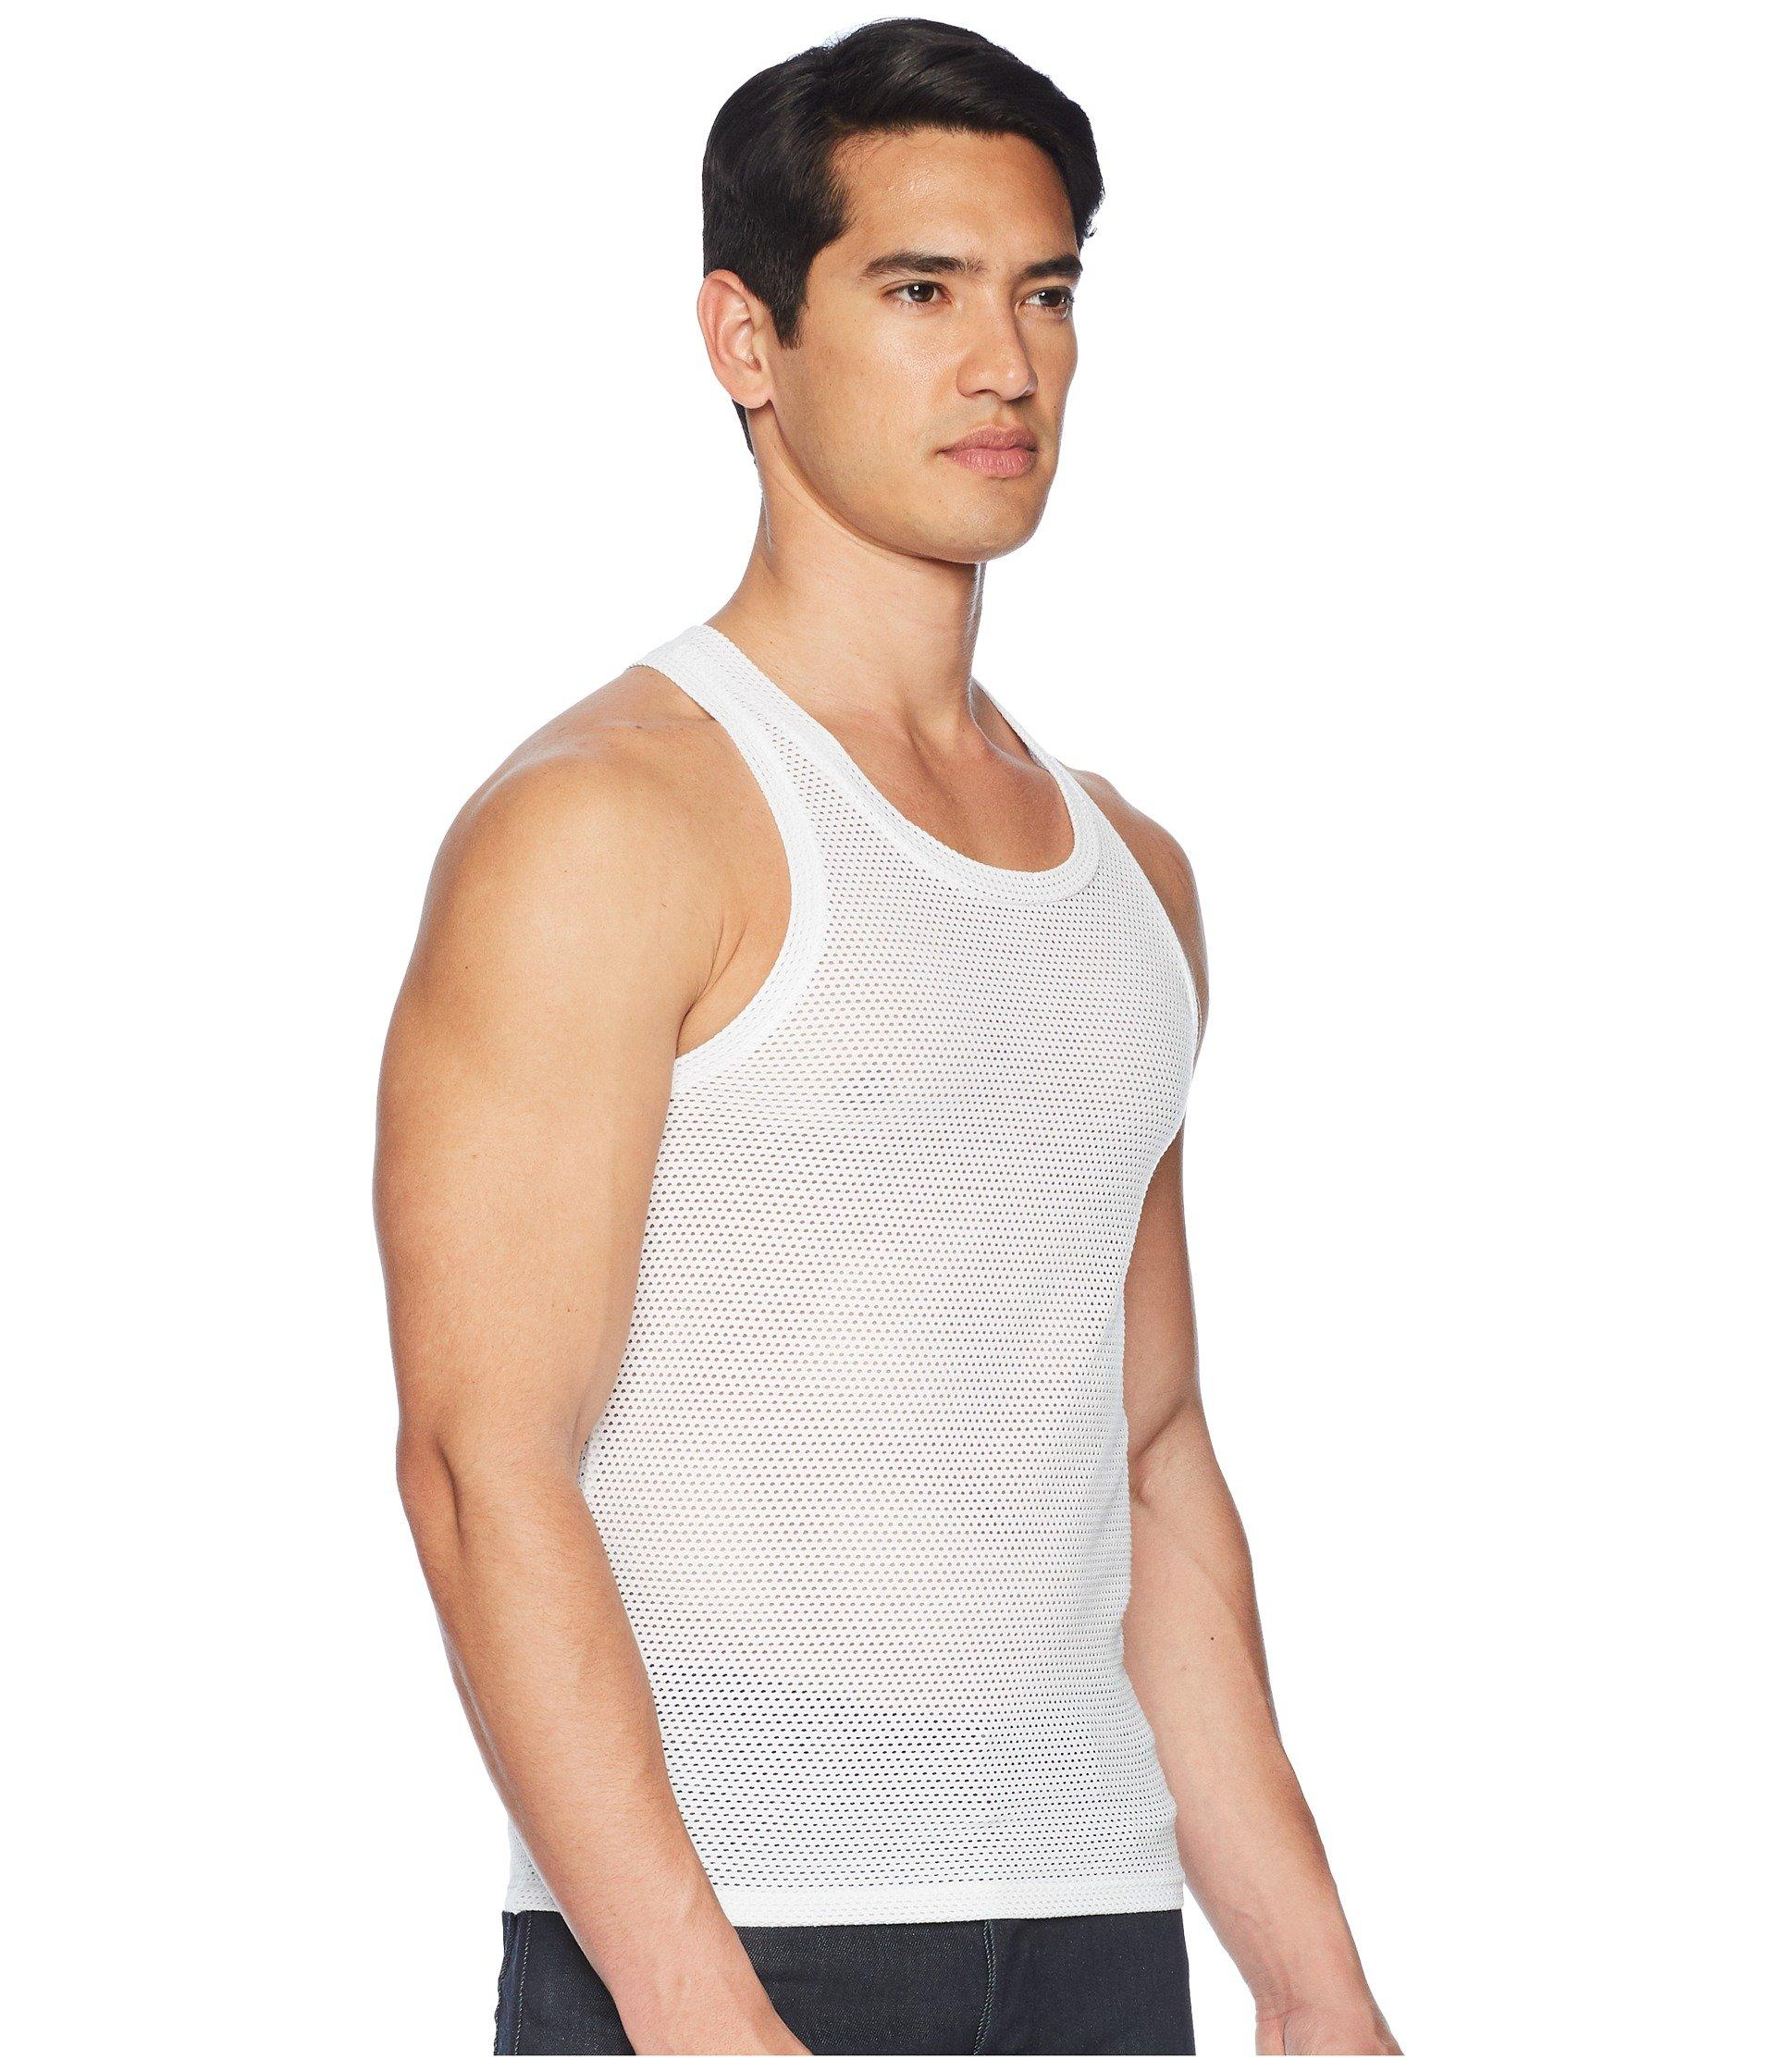 77a7deebc04ec Emporio Armani - White Tech Mesh Tank Top for Men - Lyst. View fullscreen